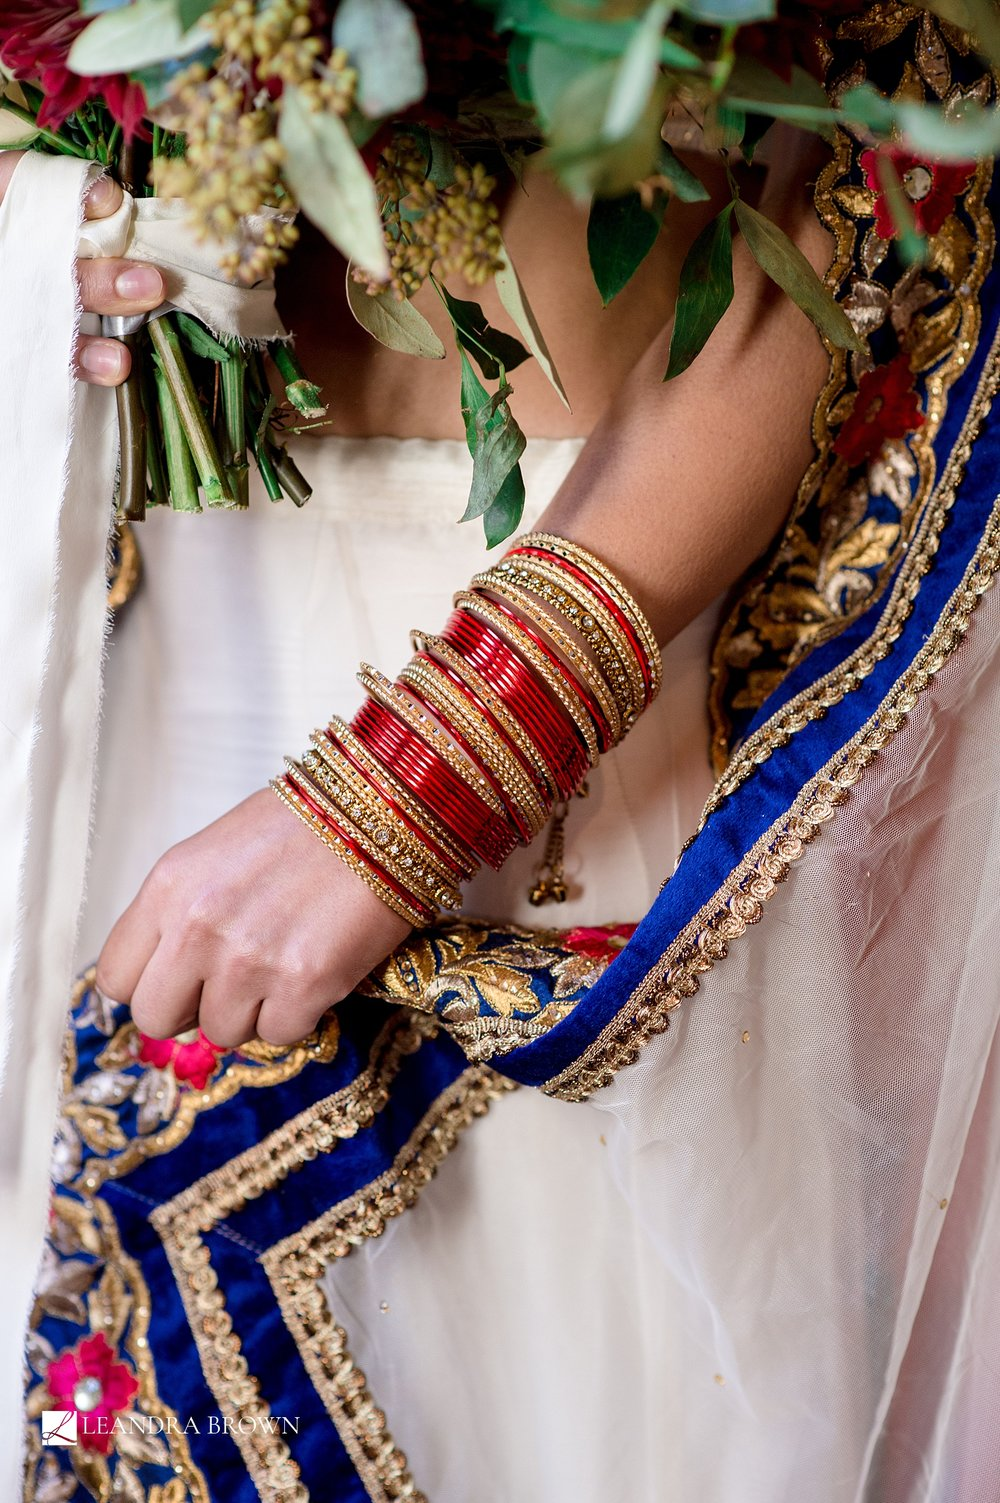 South Asian Wedding Photography.LeandraBrownPhotography_0038.jpg